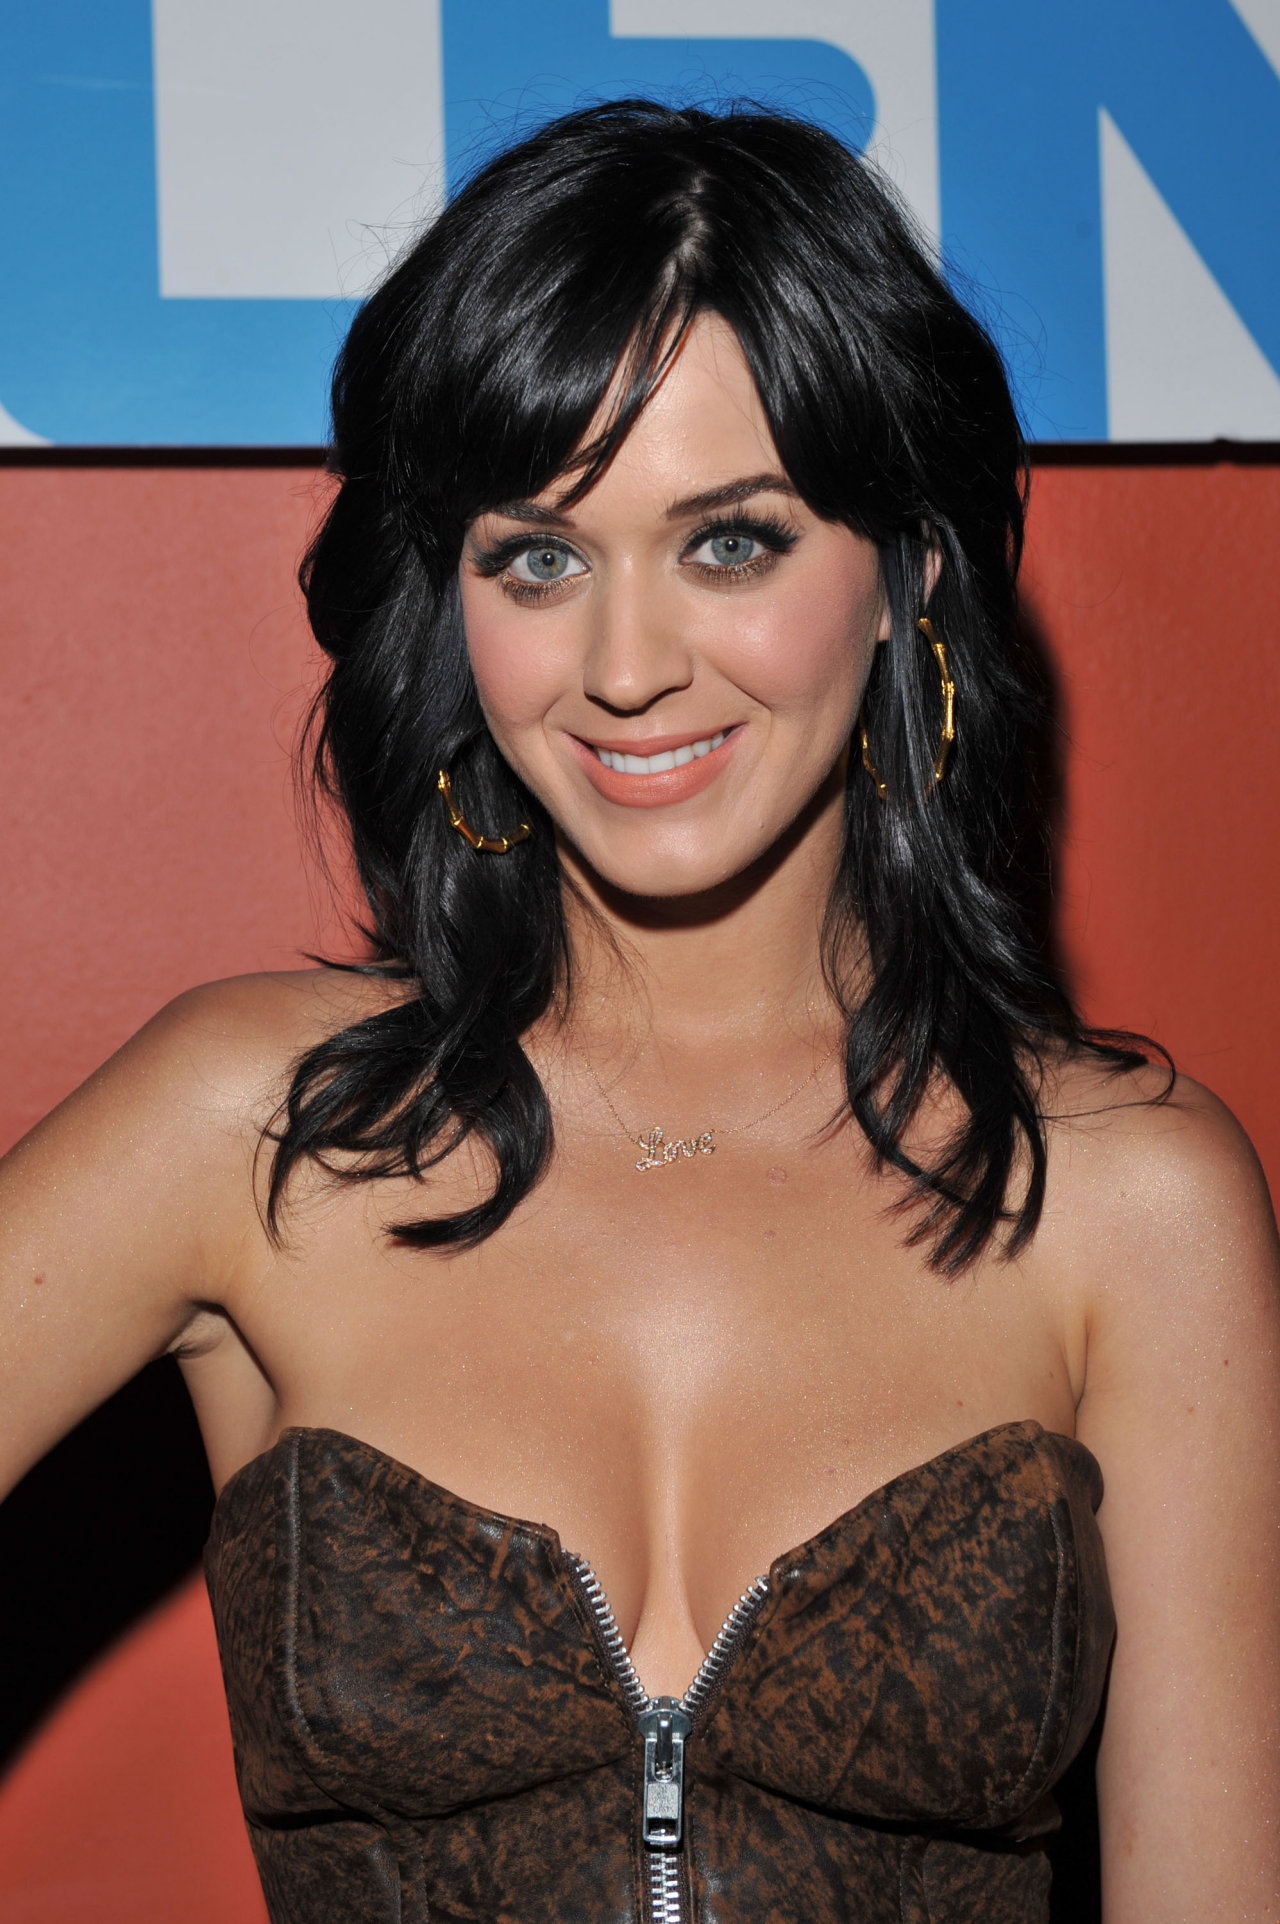 Katy Perry Tattoos